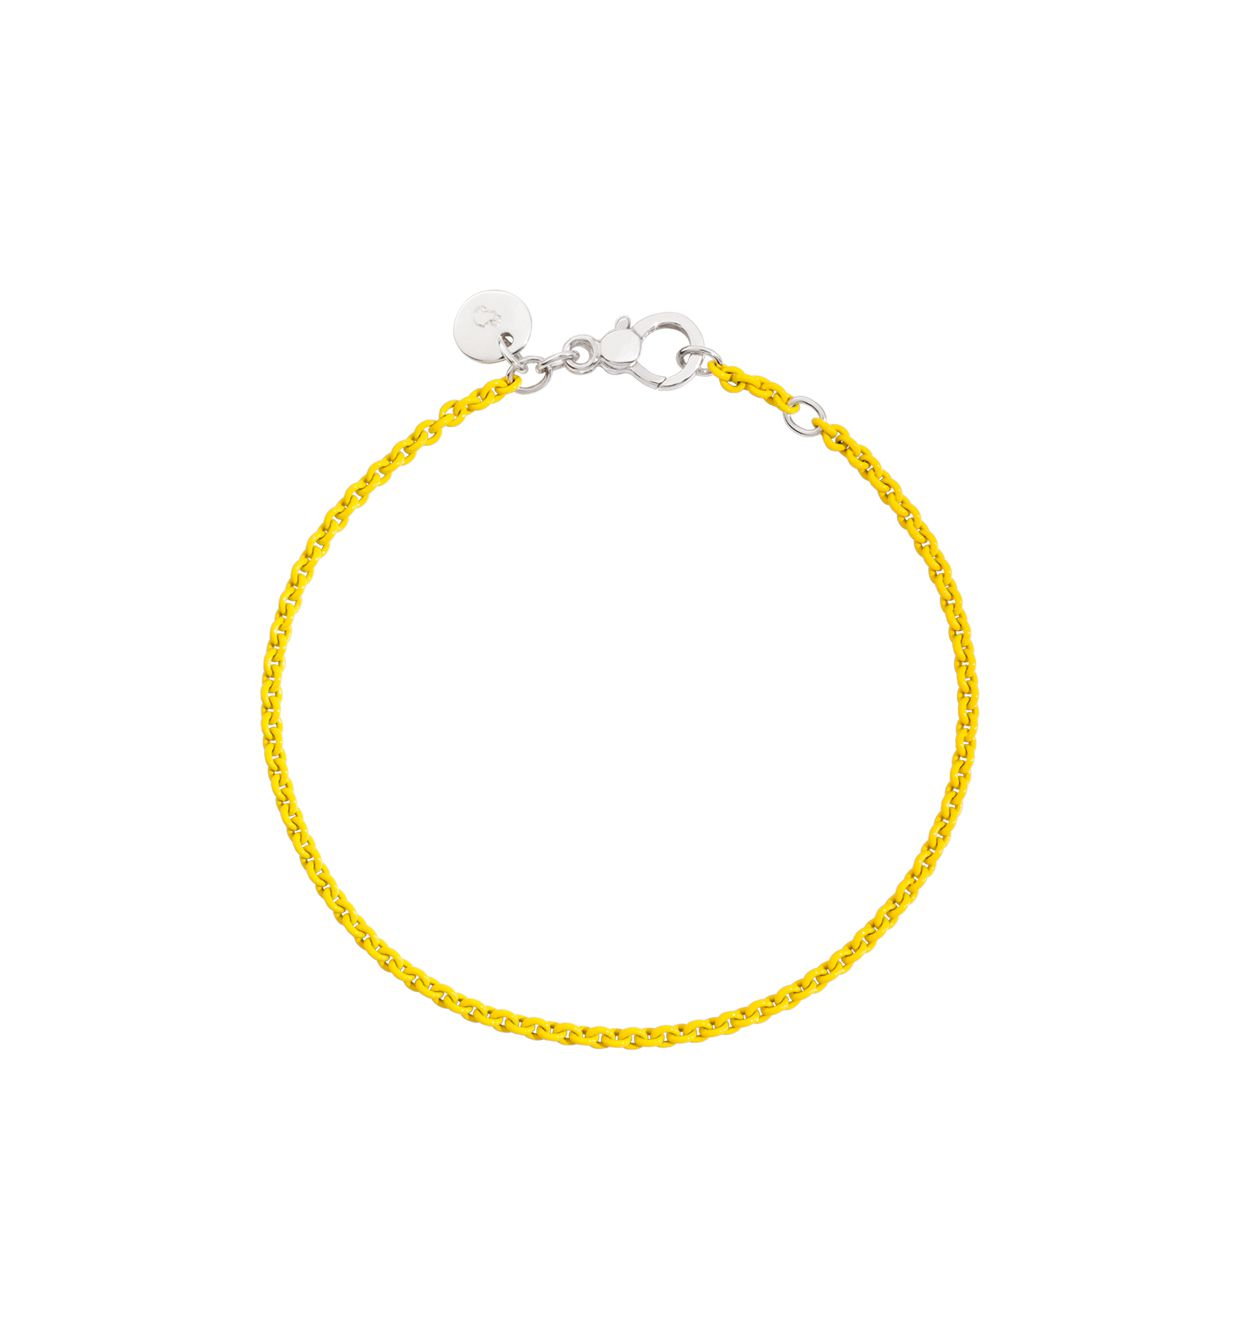 DoDo Chain Bracelet in Yellow Lacquered Silver - Orsini Jewellers NZ